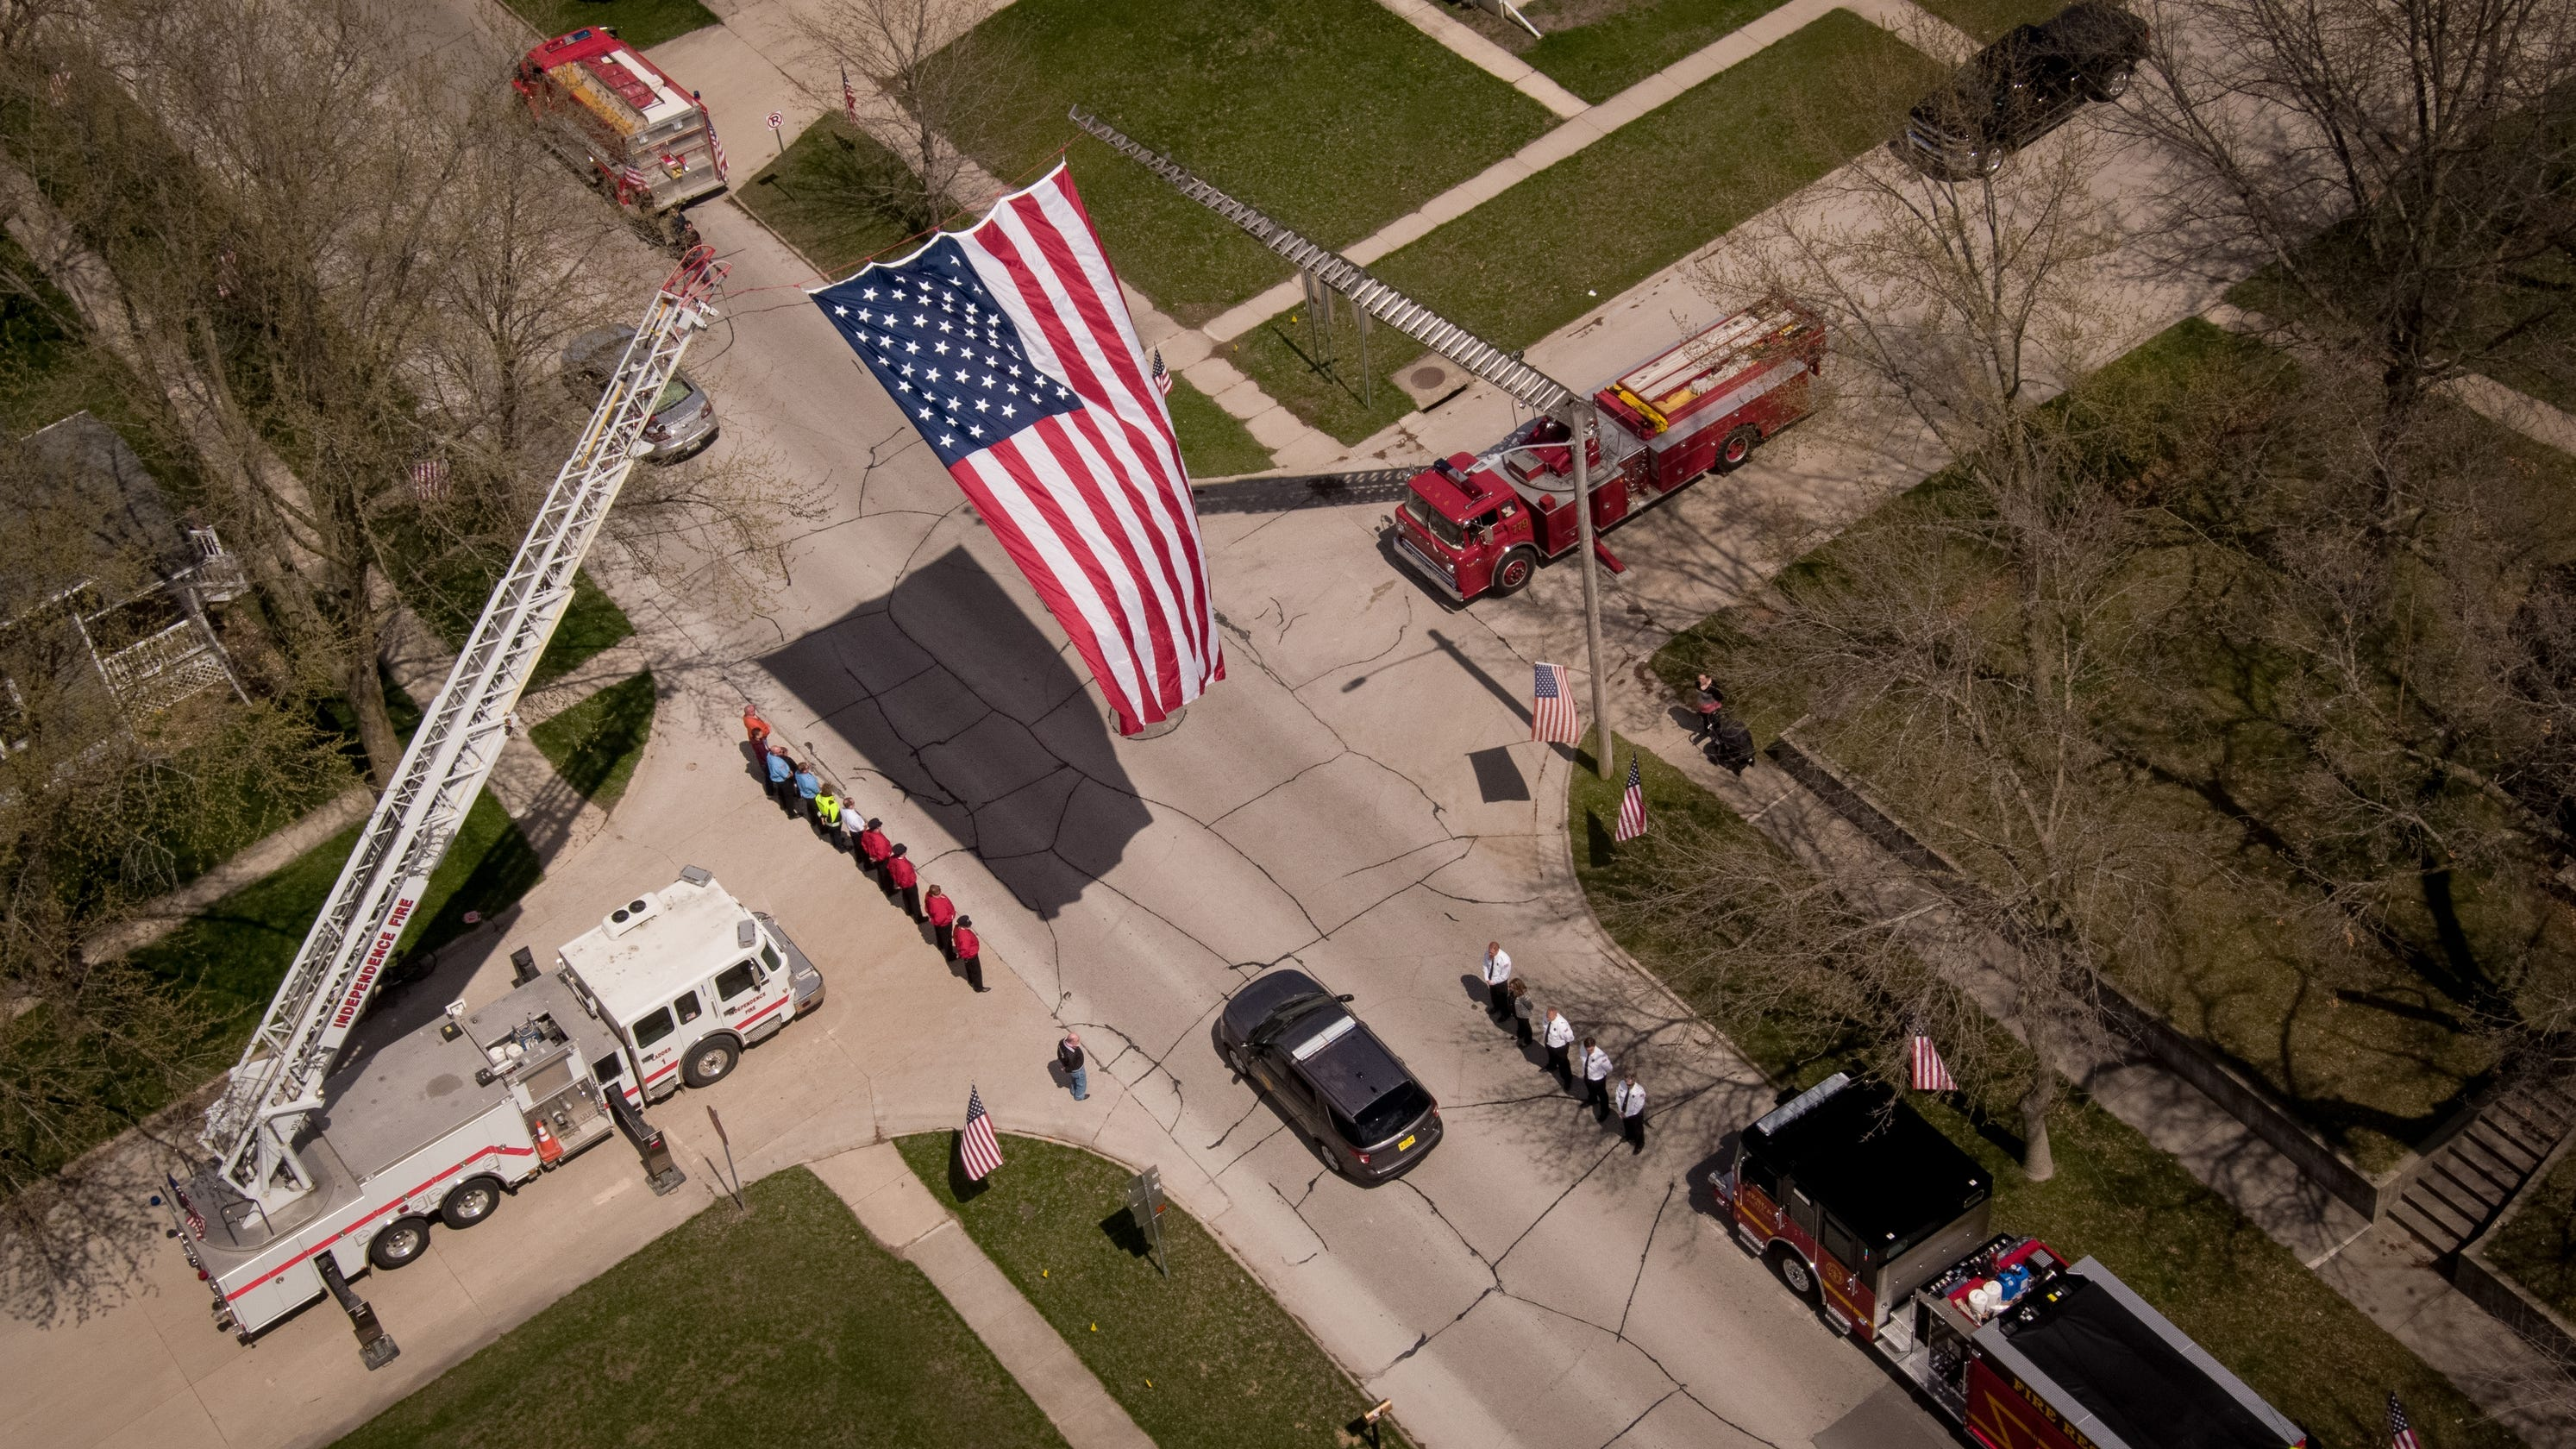 Fallen State Patrol Sgt. Jim Smith eulogized as a man of integrity, faith and goofy humor